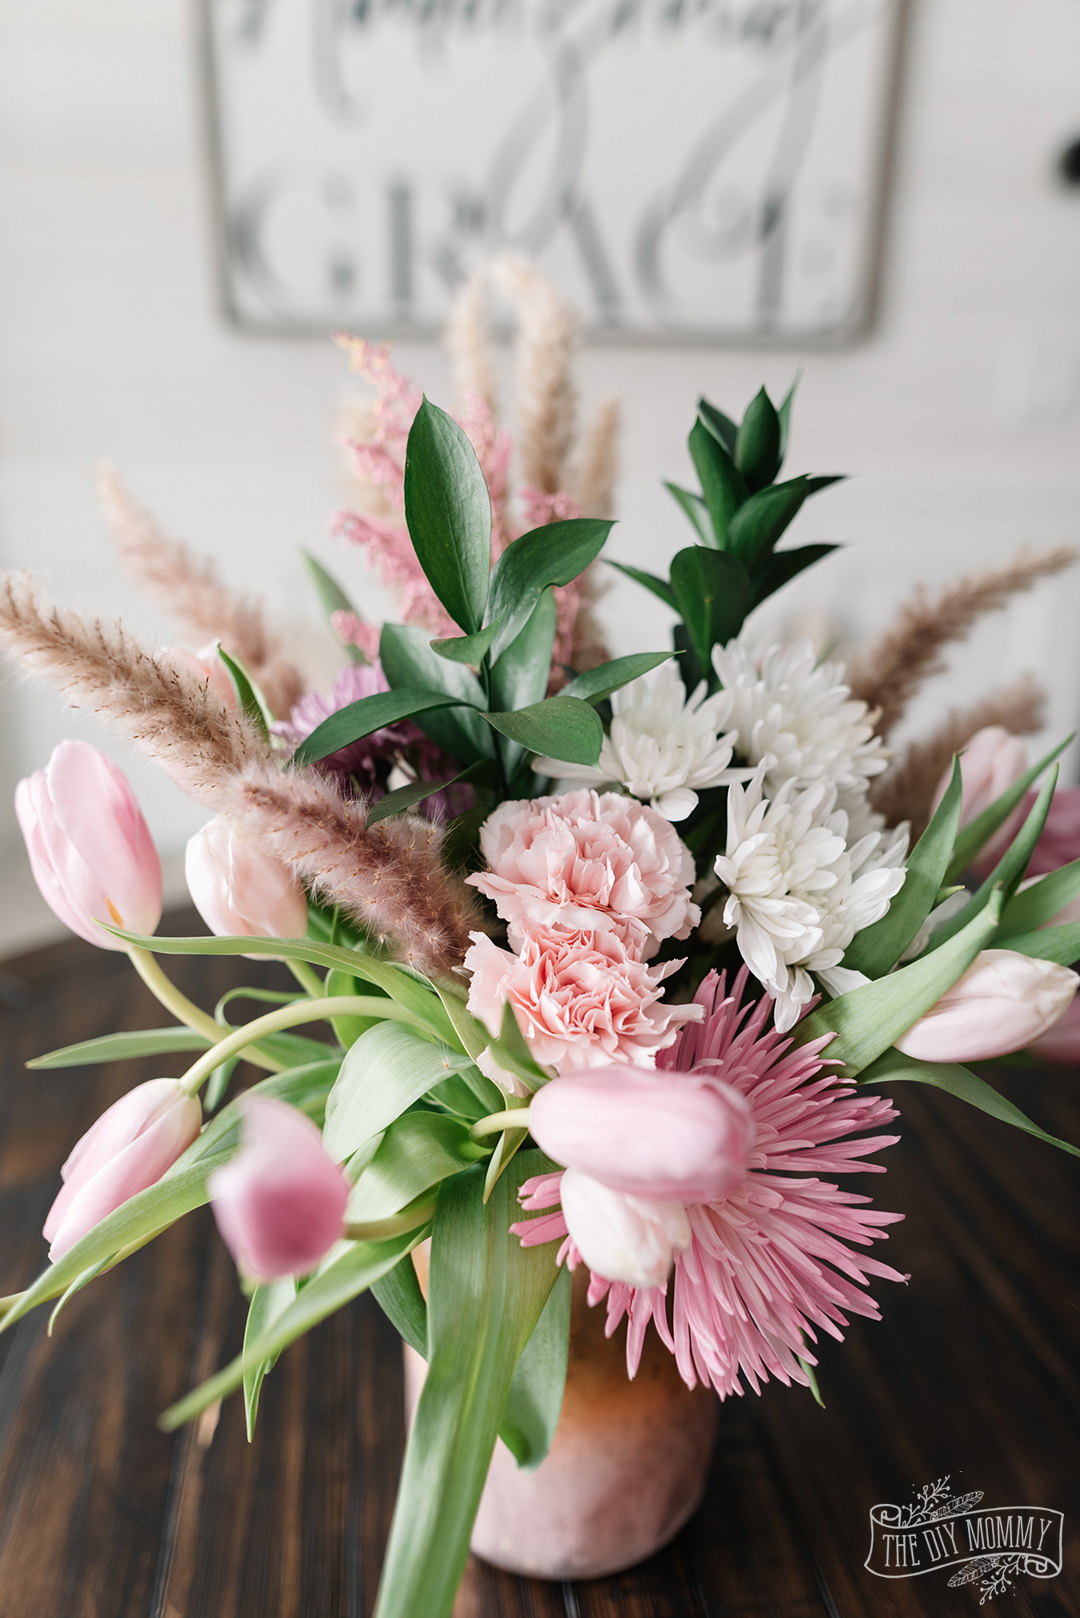 Make grocery store flowers look expensive and beautiful with these simple arranging tips